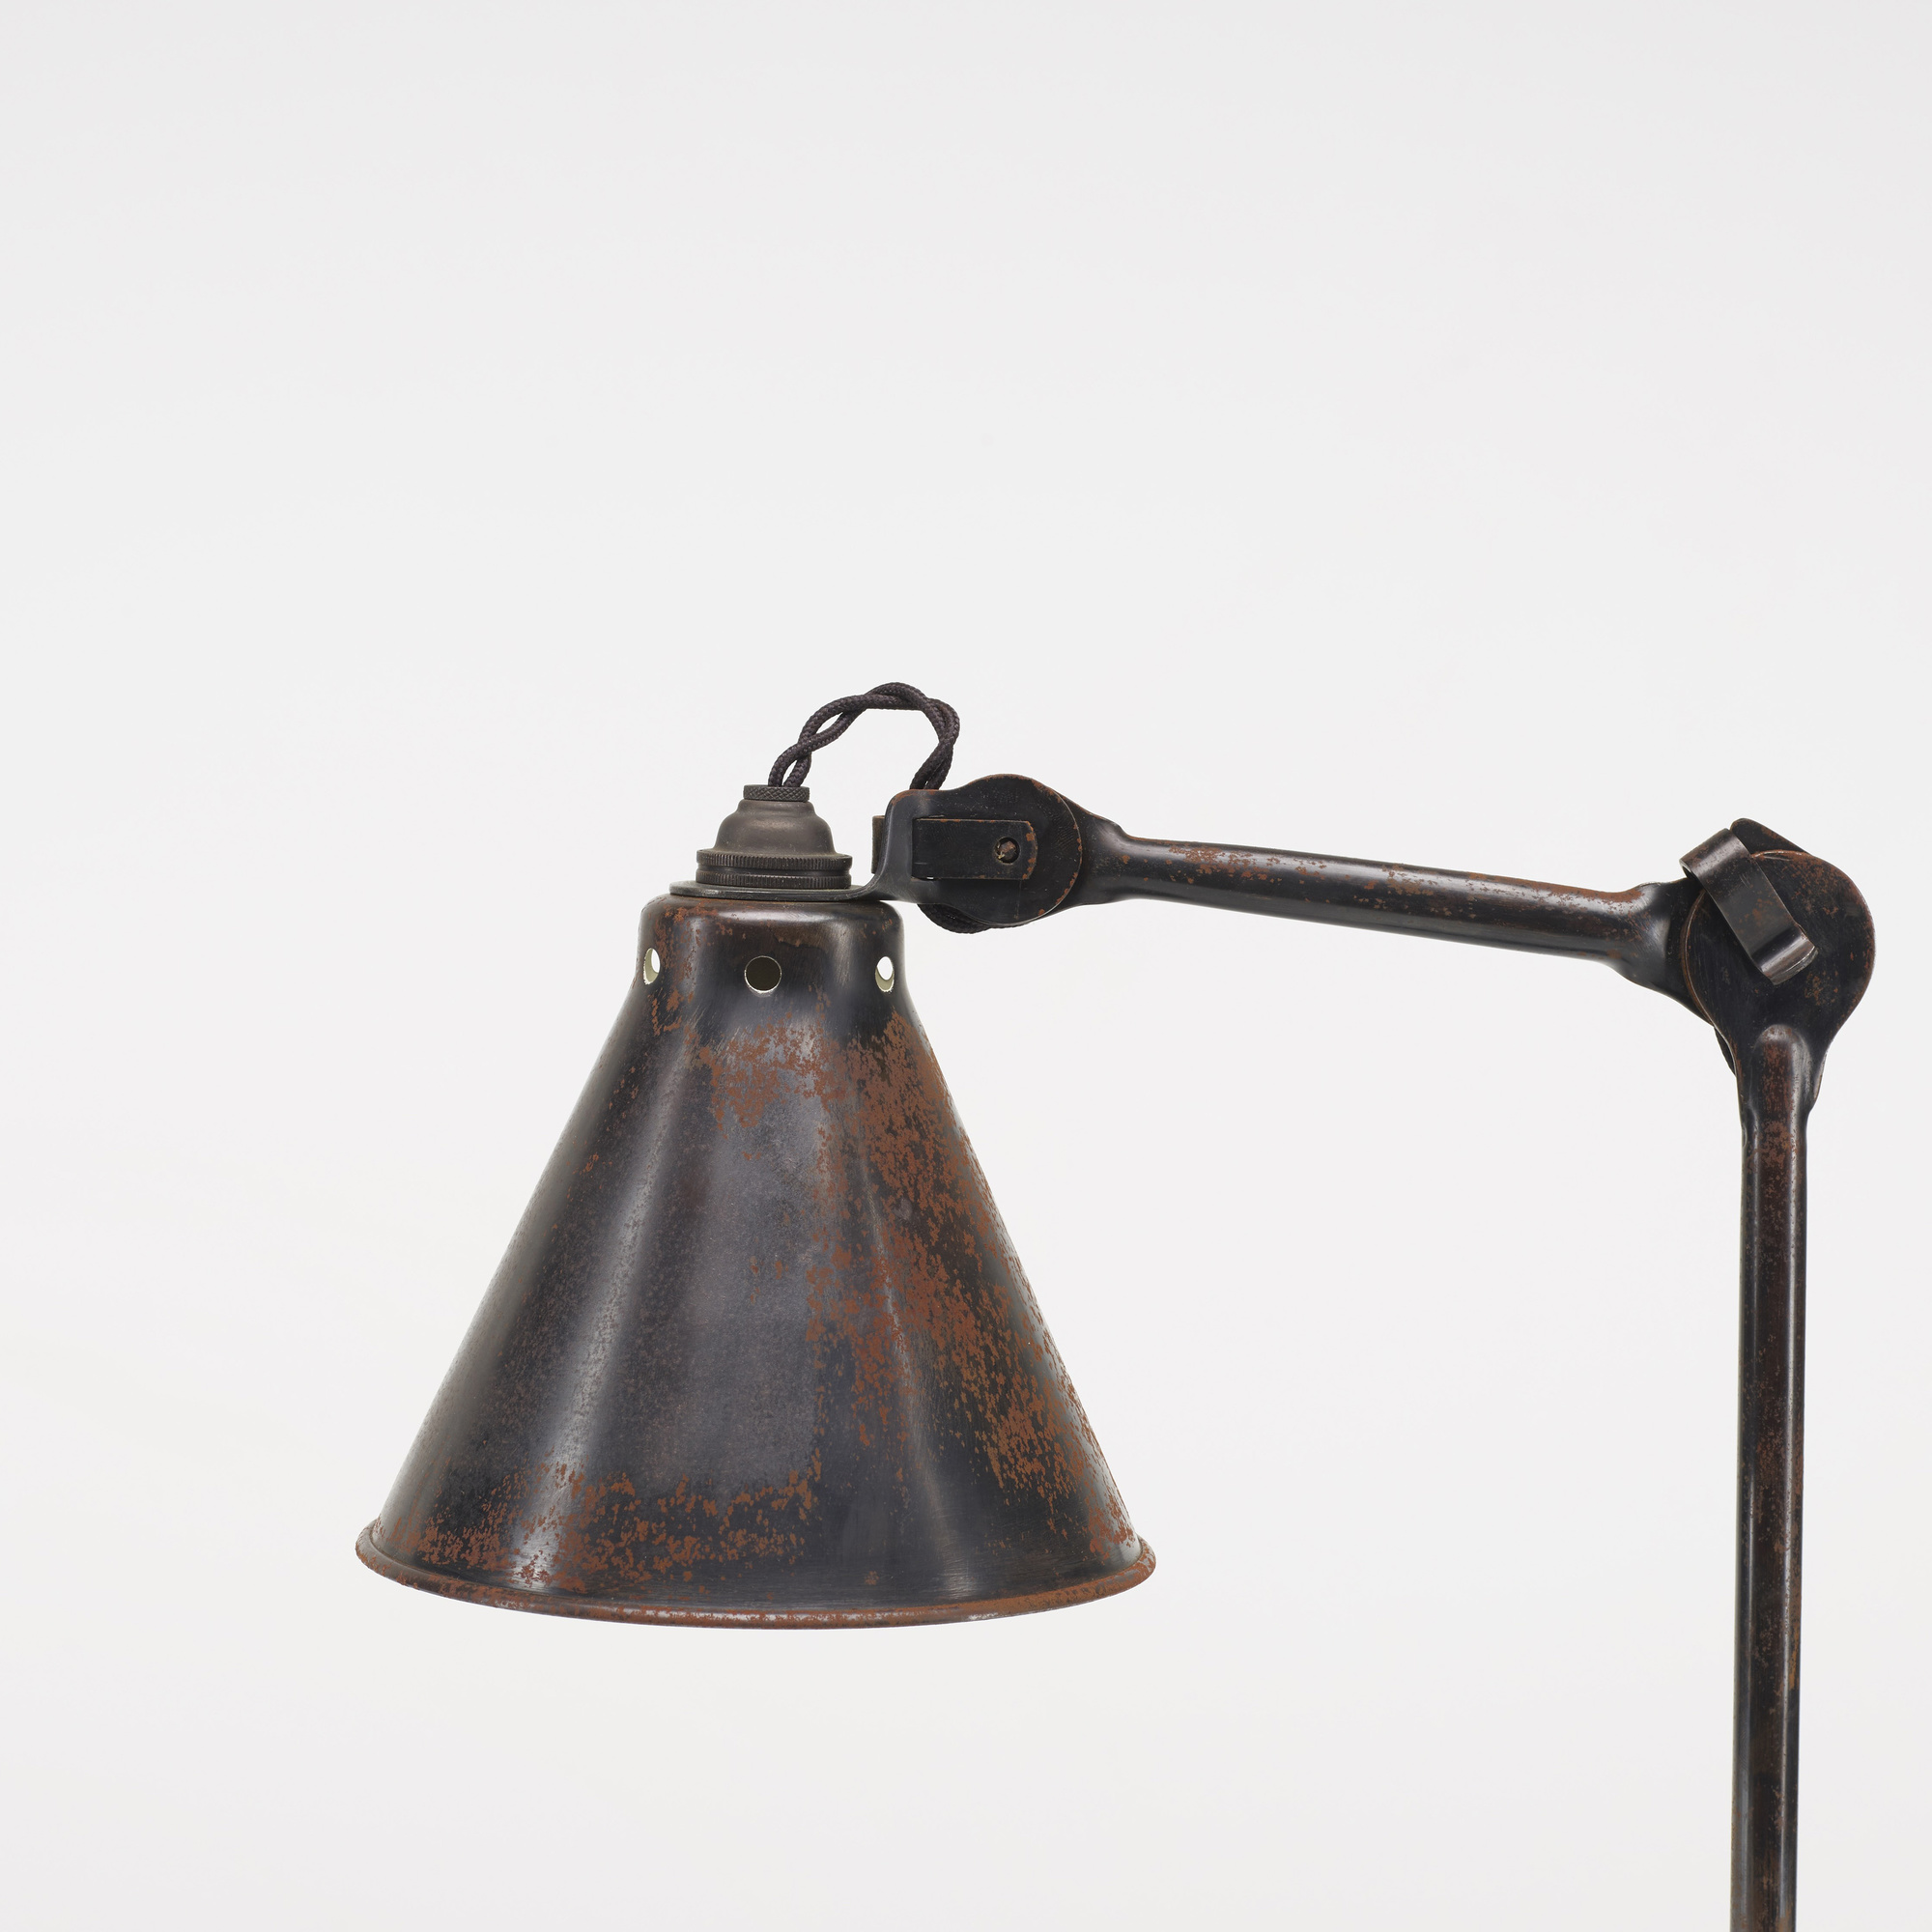 133: Bernard-Albin Gras / table lamp, model 205 (2 of 2)